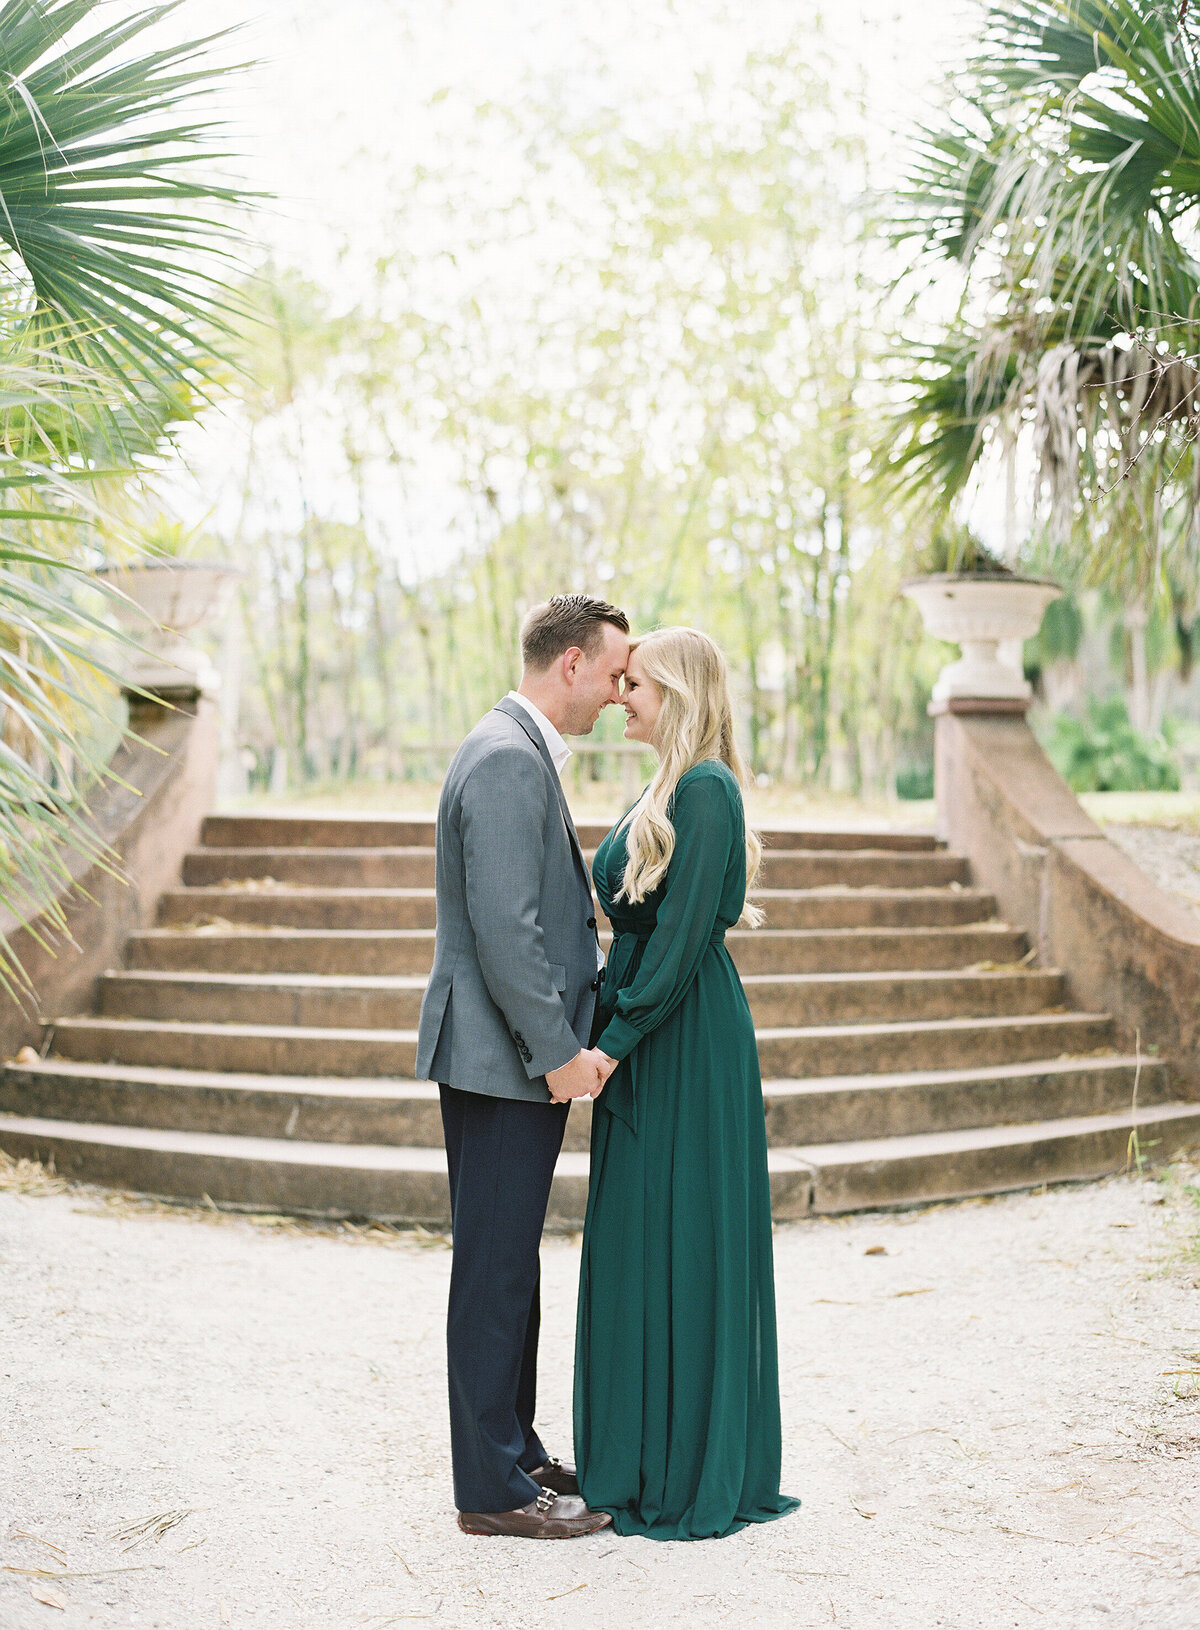 Napl-Florida-Engagement-film-photogrpaher-koreshan-state-park-11